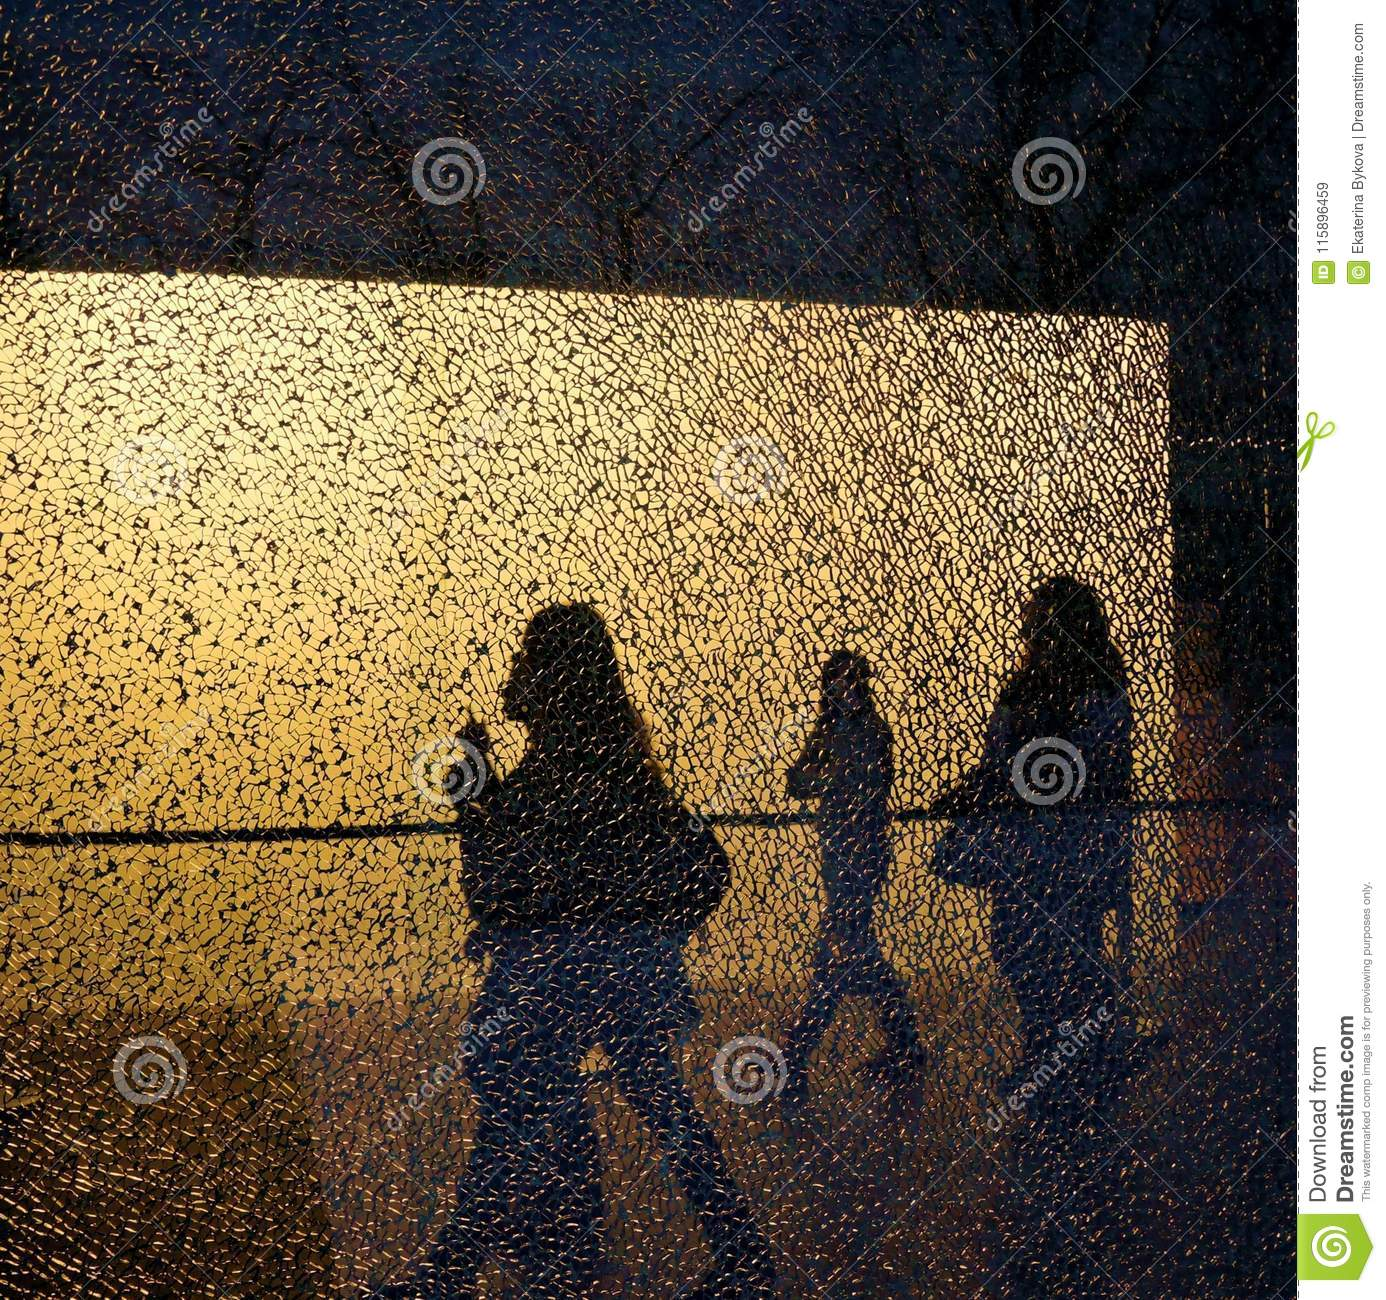 Silhouettes of walking people and trees seen through the broken window